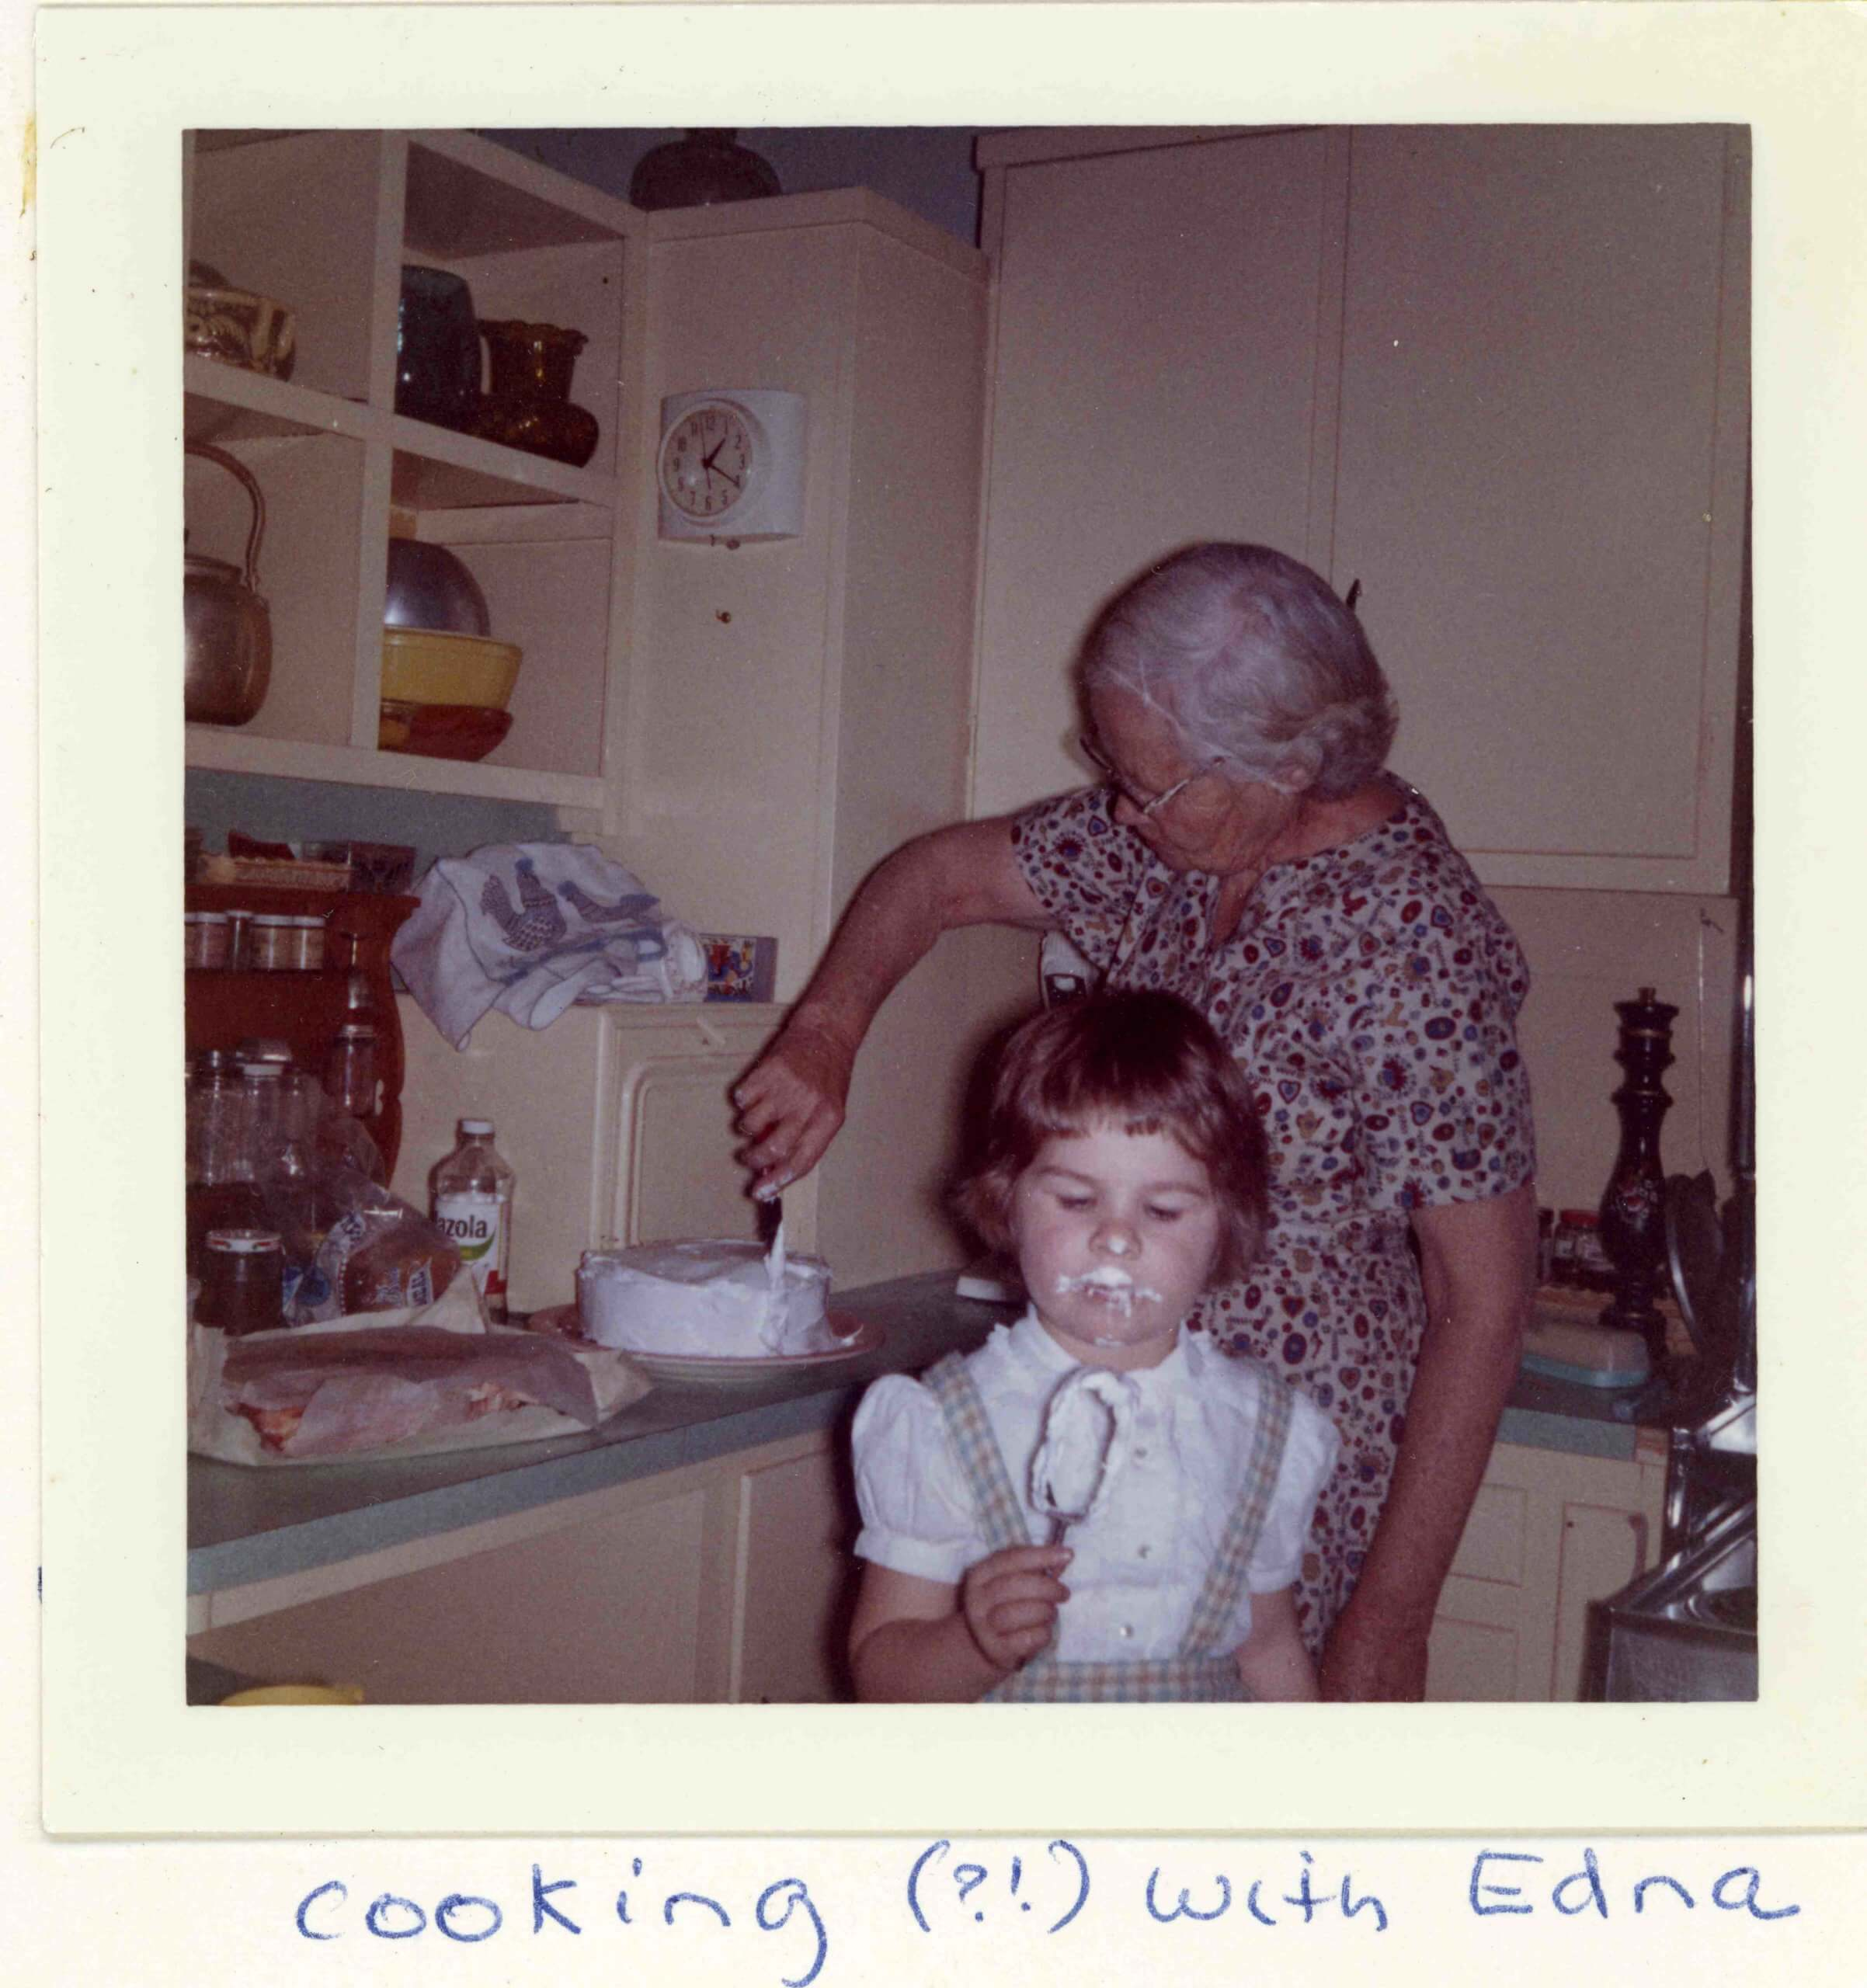 Who was Edna?